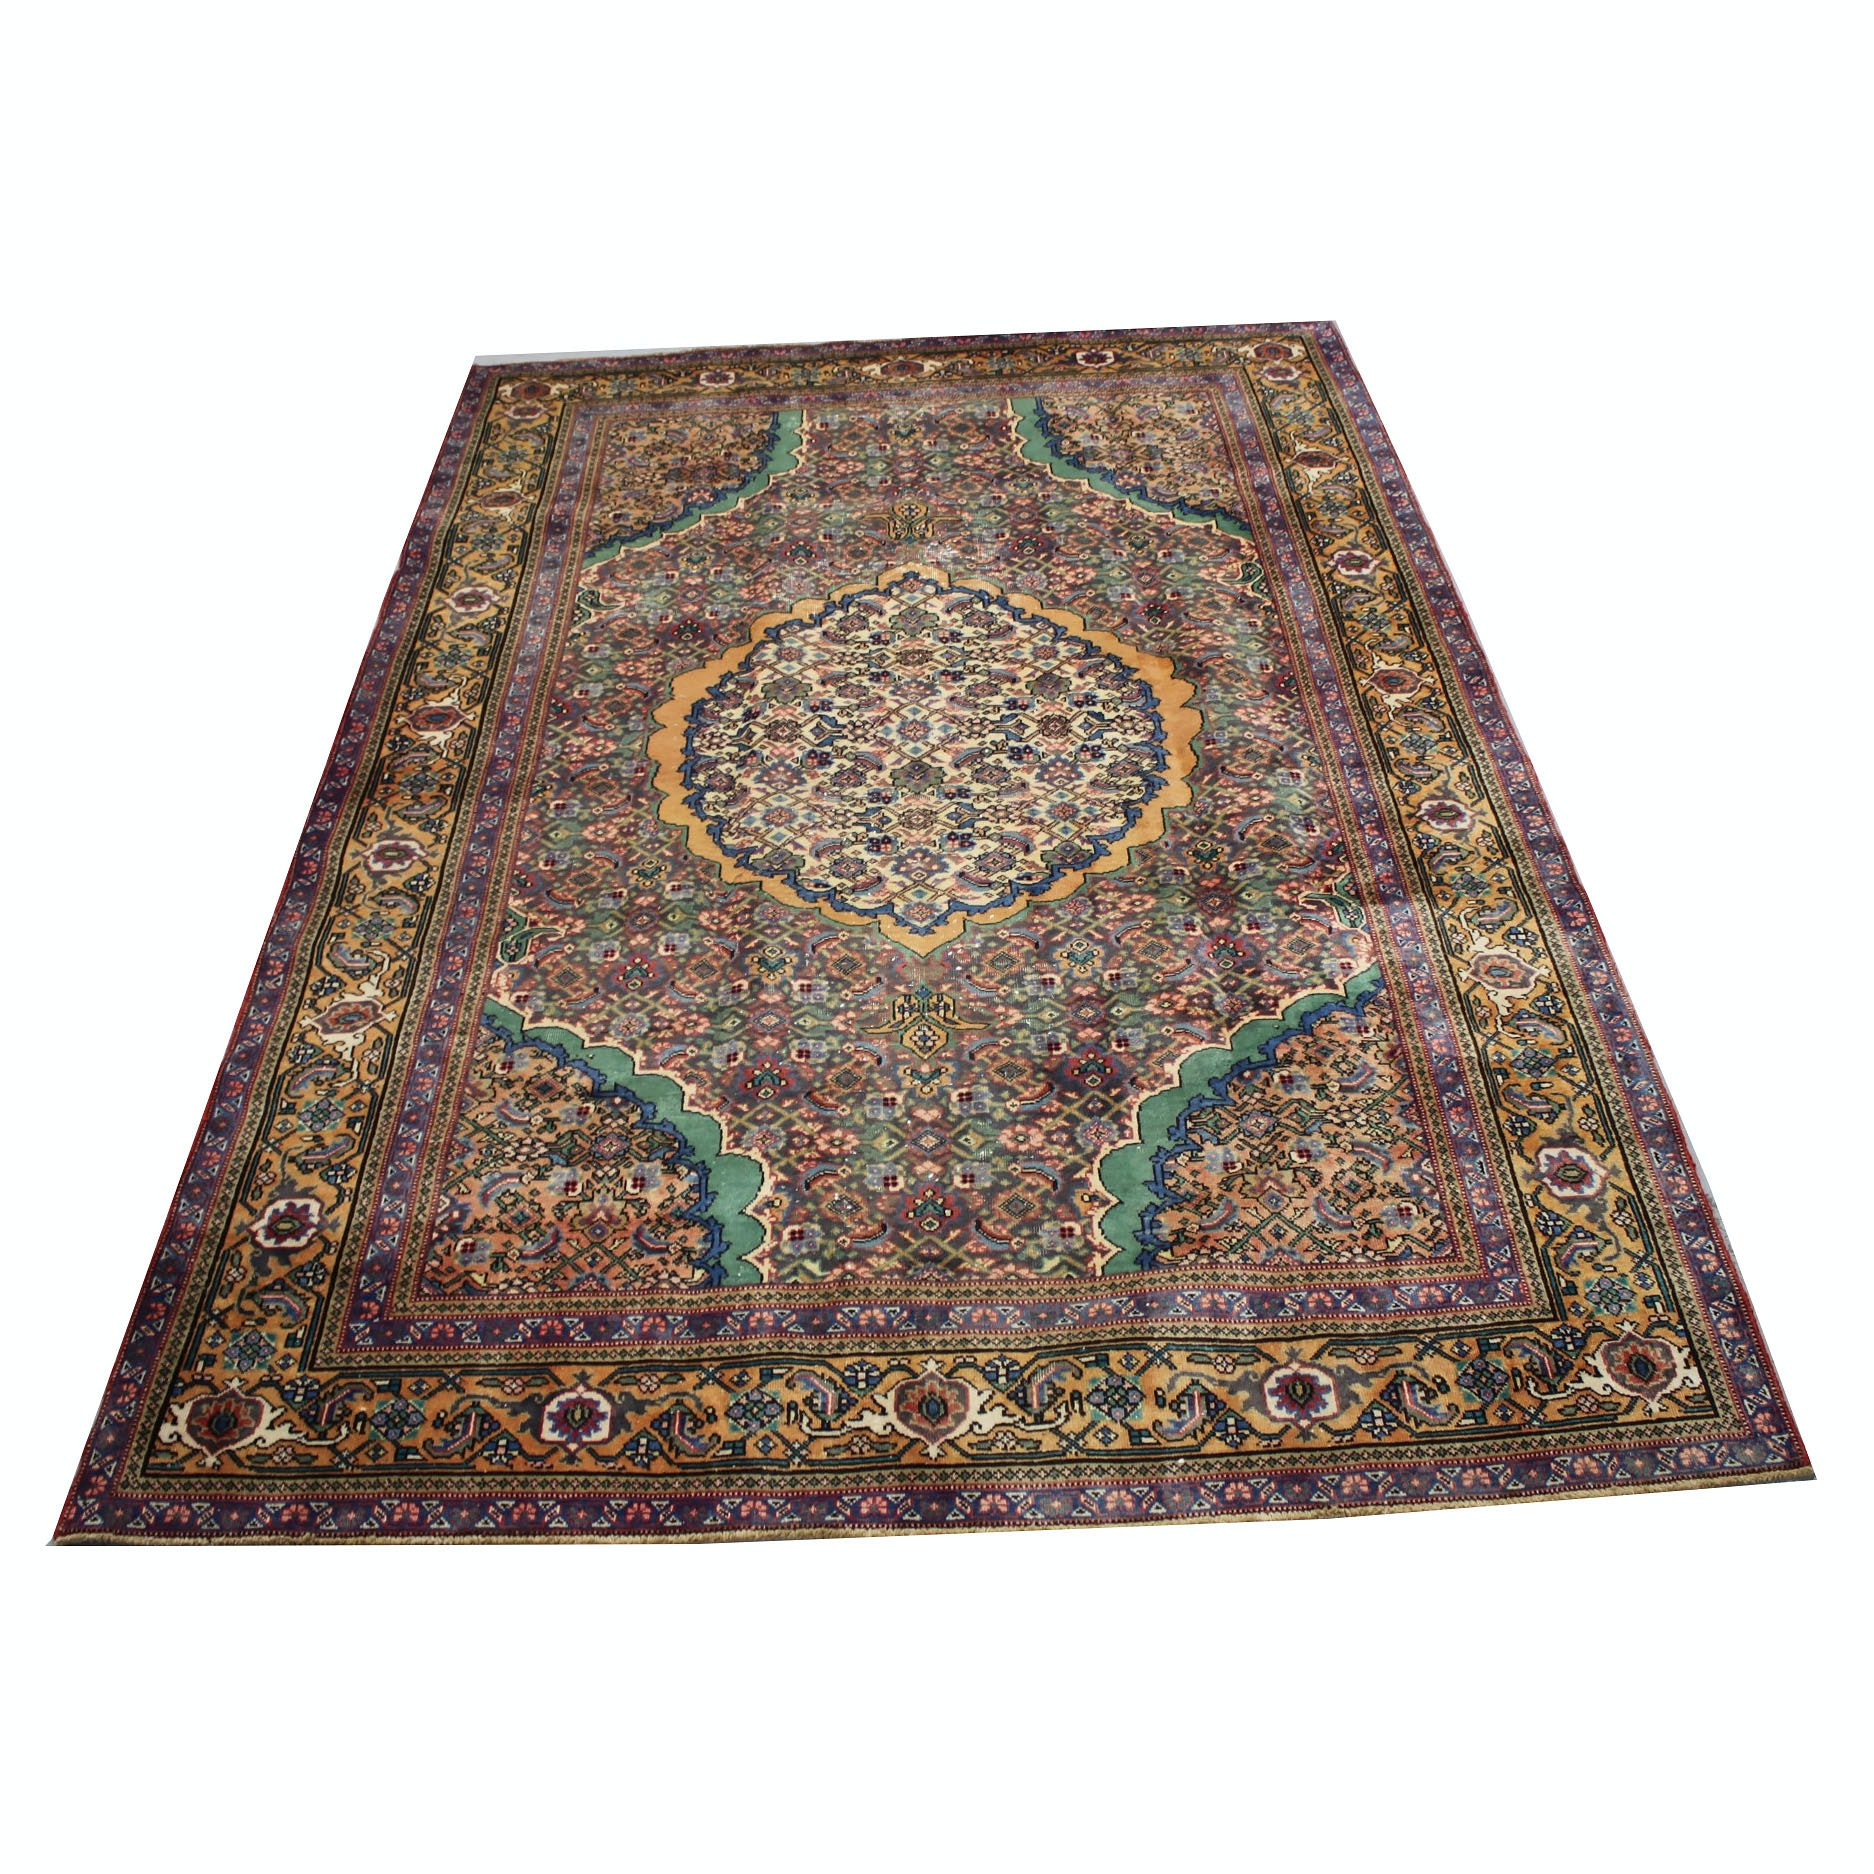 Vintage Hand-Knotted Persian Moud Bijar Wool Area Rug